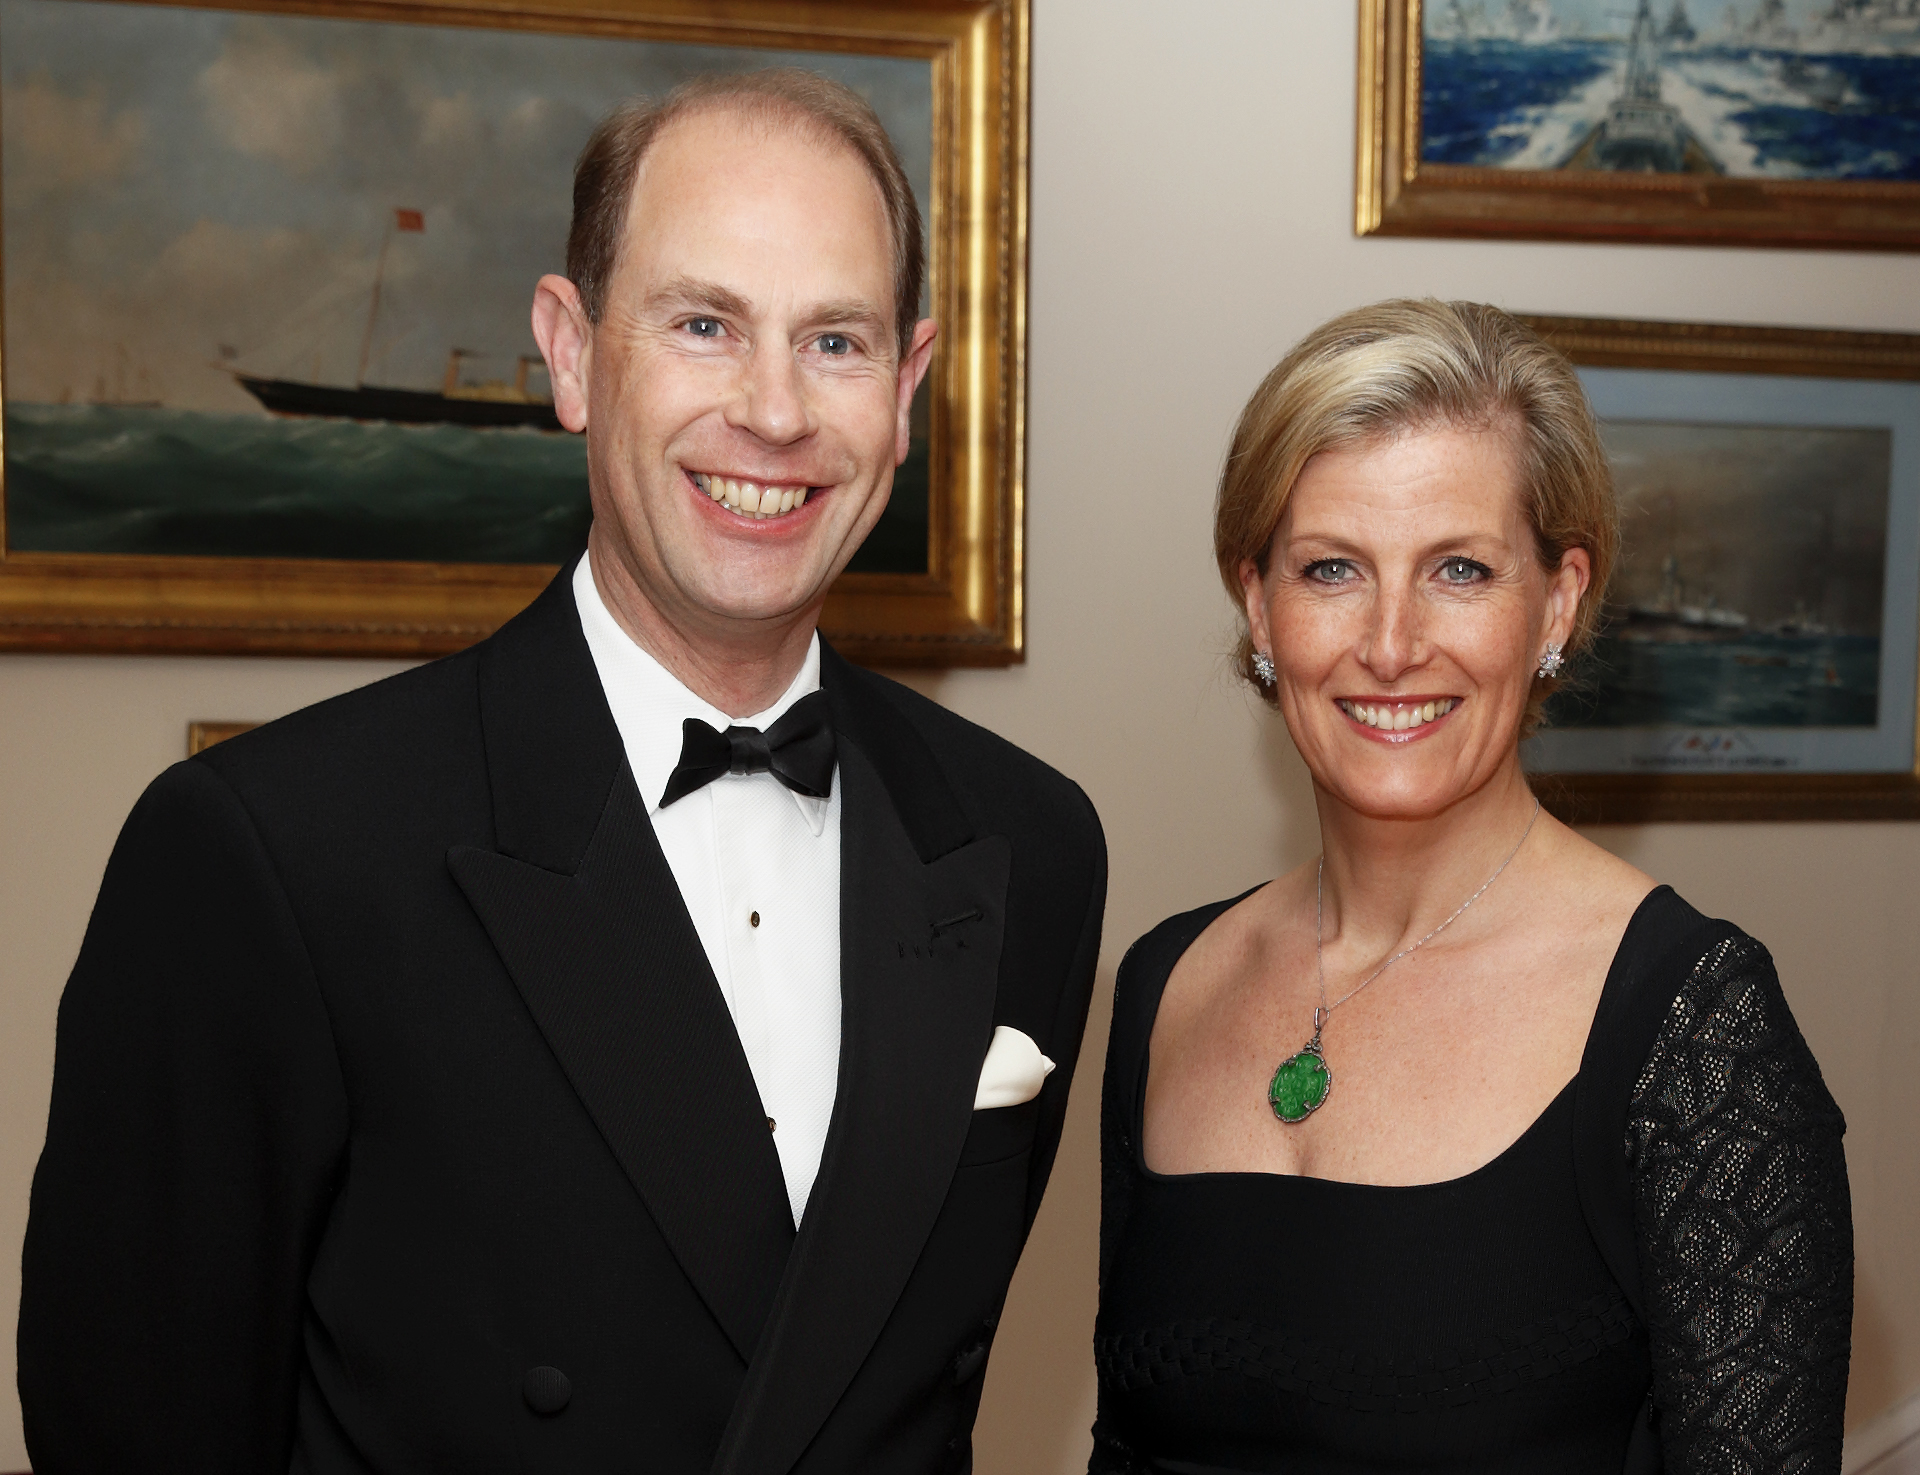 Prince Edward, Earl of Wessex and Sophie, Countess of Wessex attend a gala fundraising dinner on the Isle of Wight on March 27, 2014 in Cowes, England.